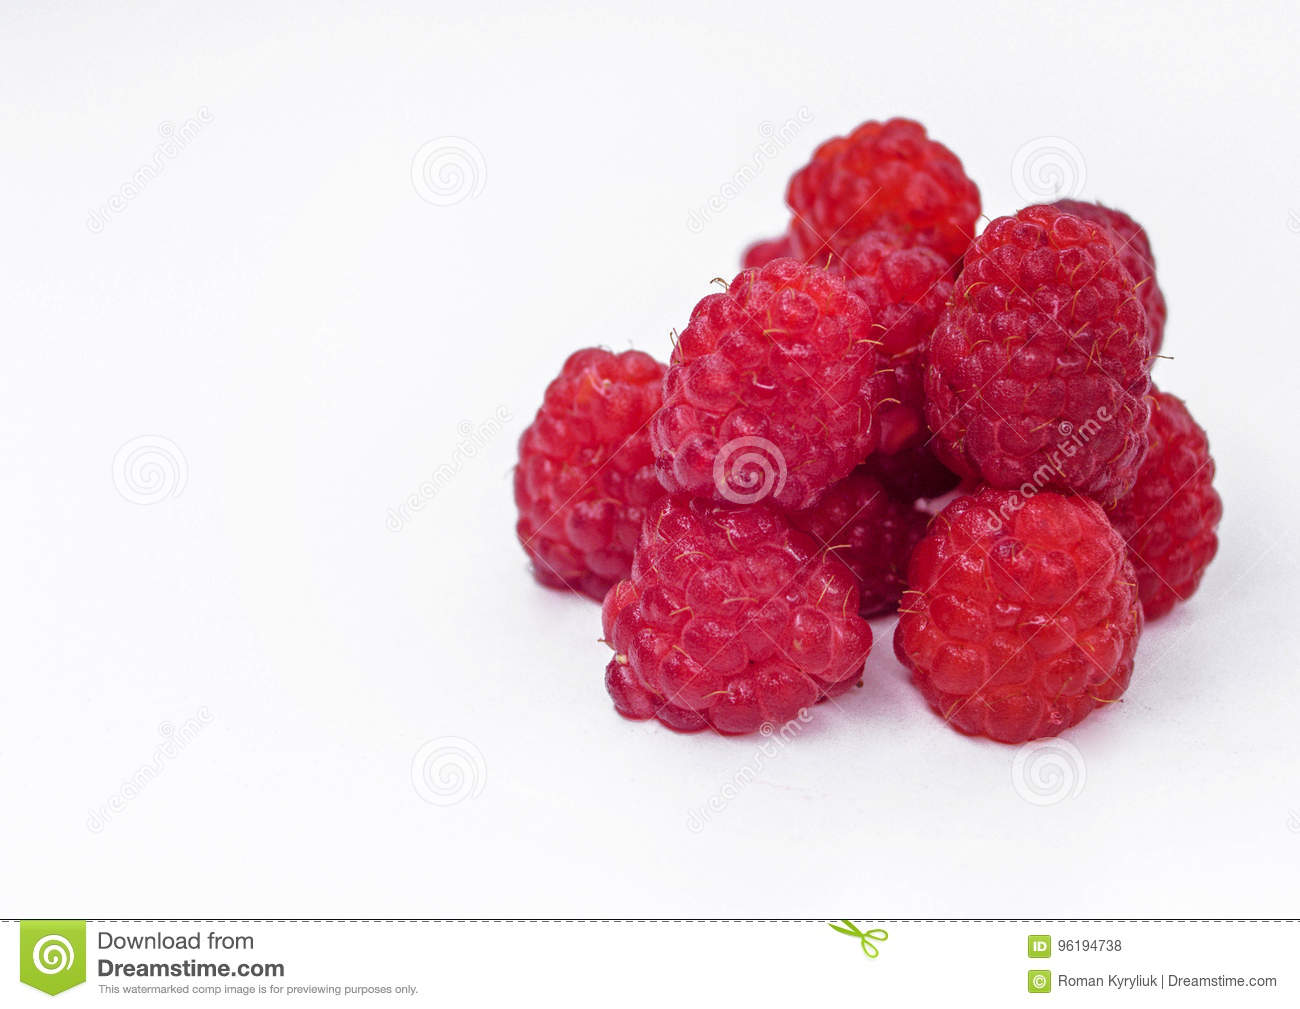 What is useful for raspberries